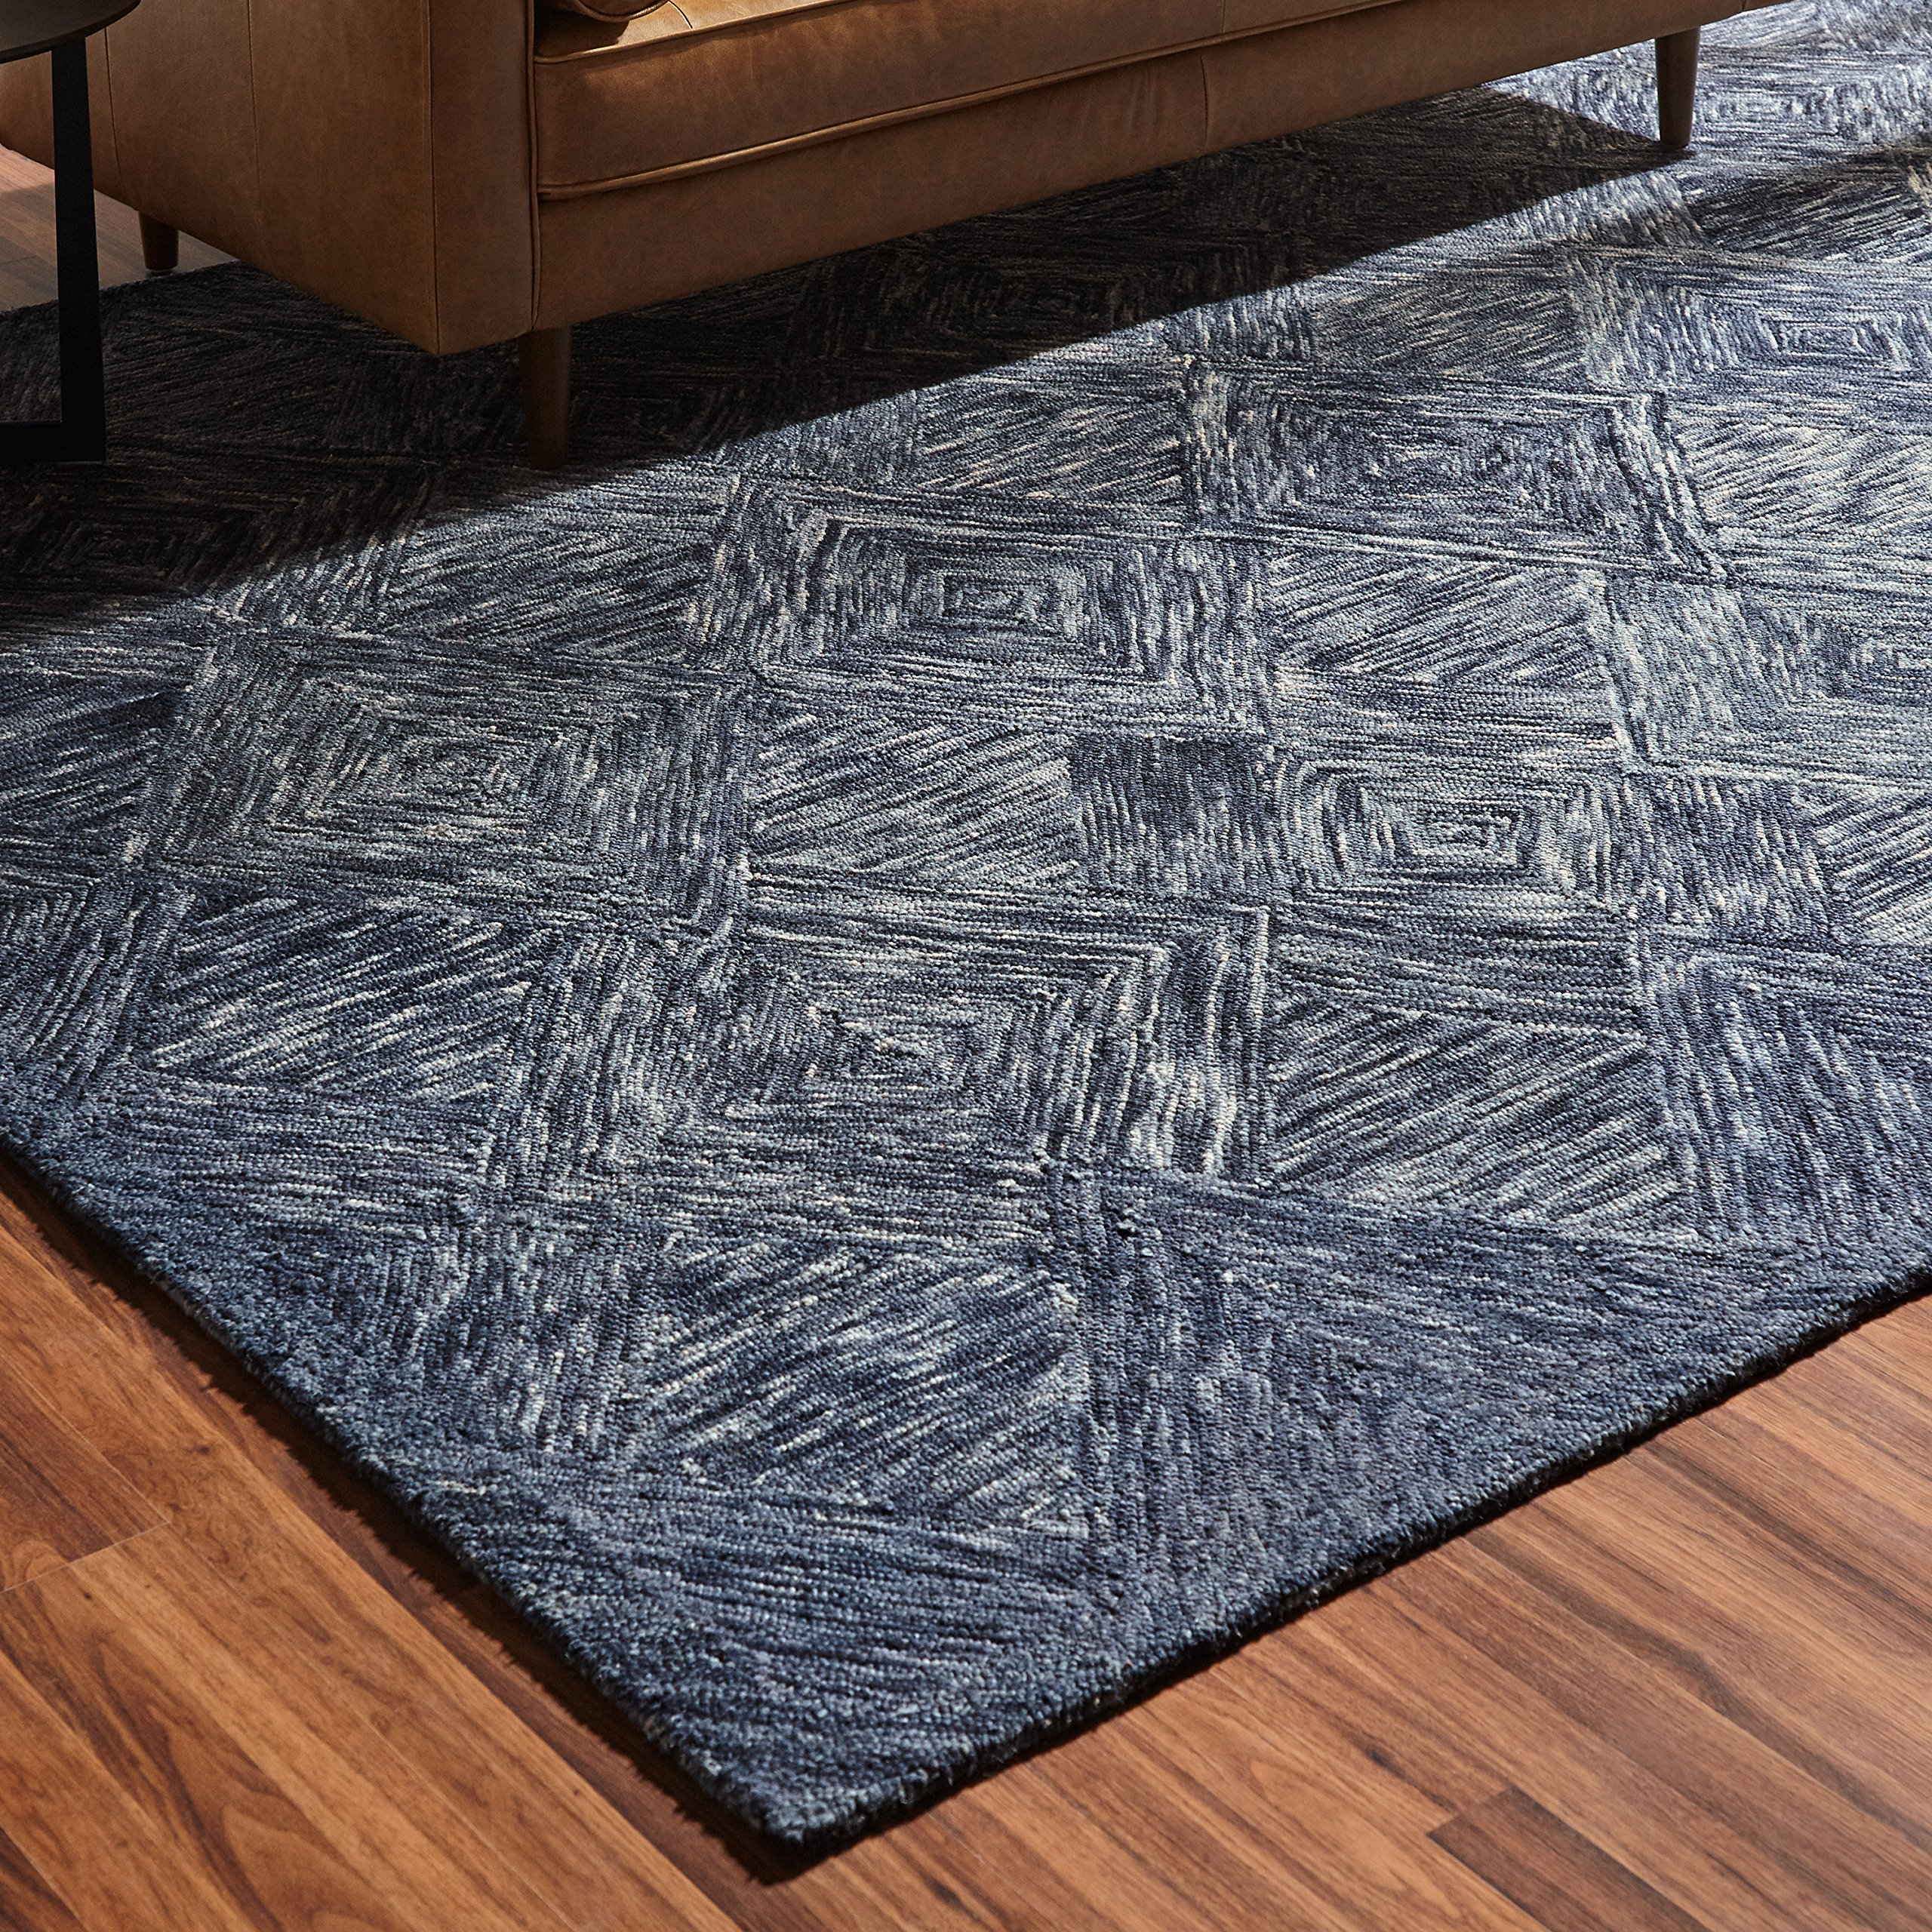 Rivet Motion Patterned Wool Area Rug, 8' x 10'6, Denim Blue by Rivet (Image #3)